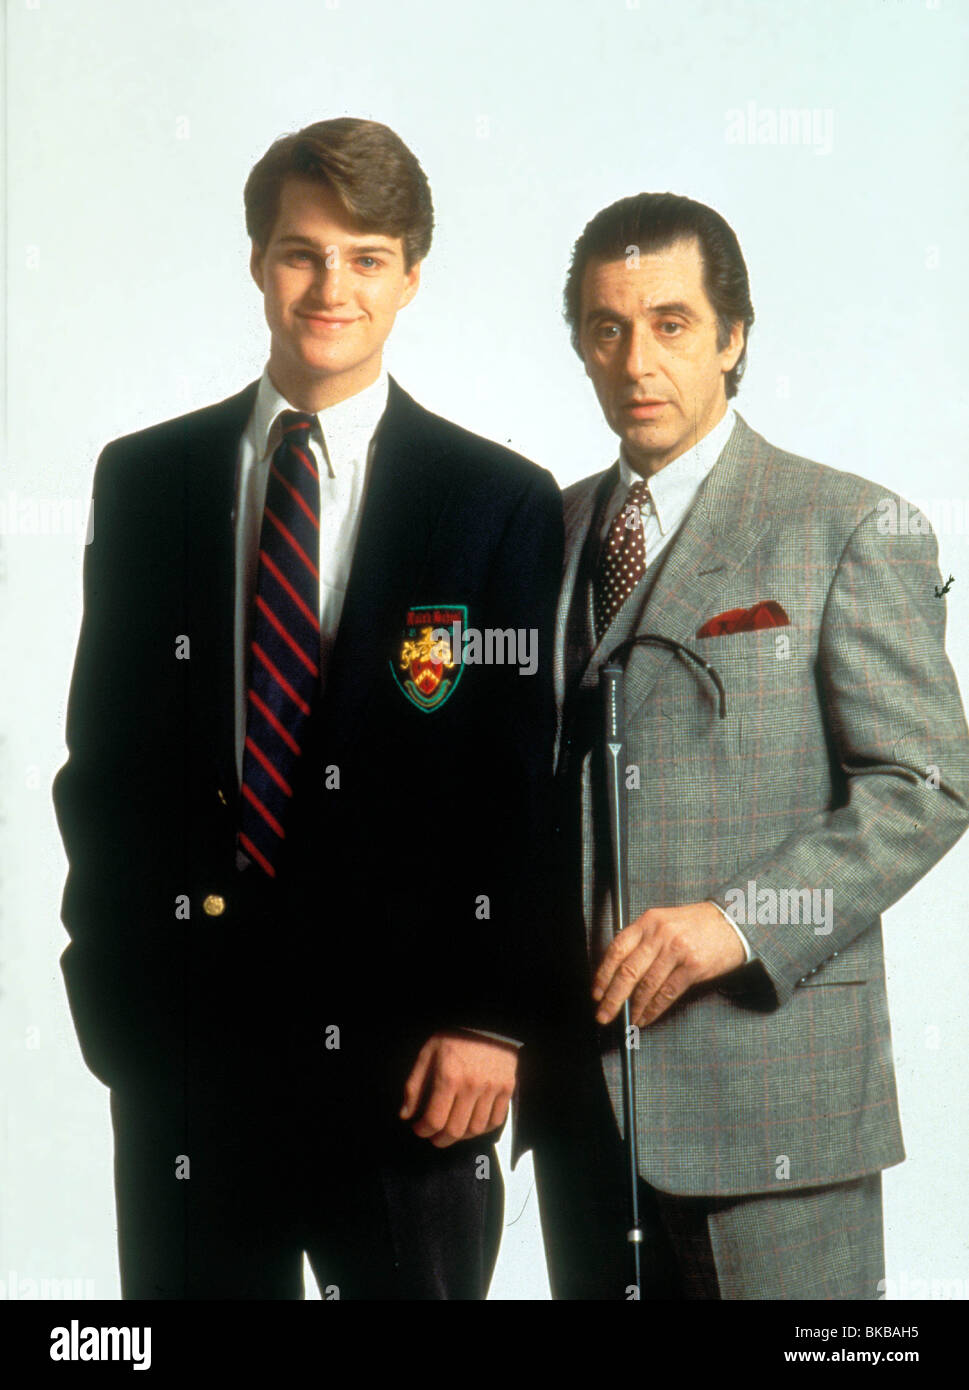 Scent Of A Woman 1992 Chris O Donnell Al Pacino Scw 007 Stock Photo Alamy